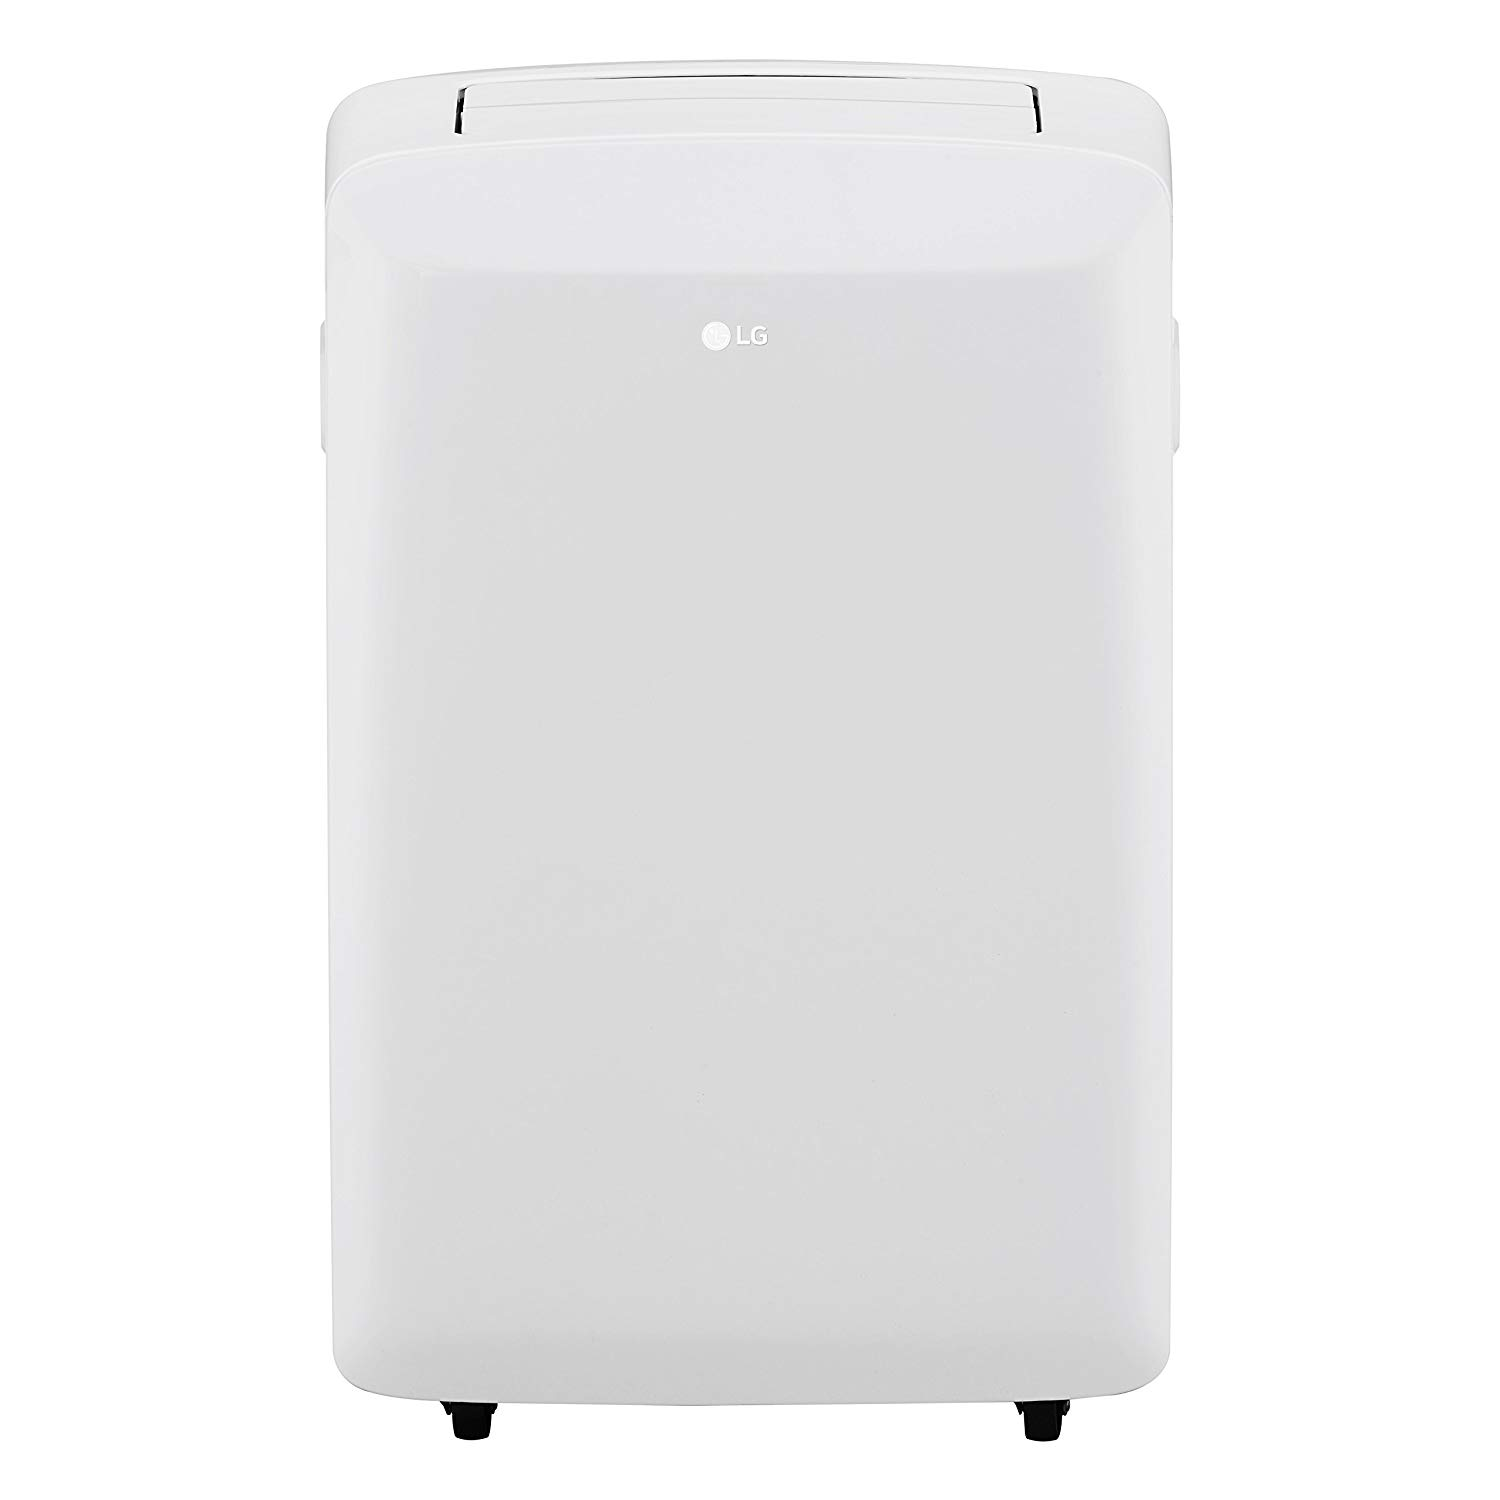 LG 115V Portable Air Conditioner